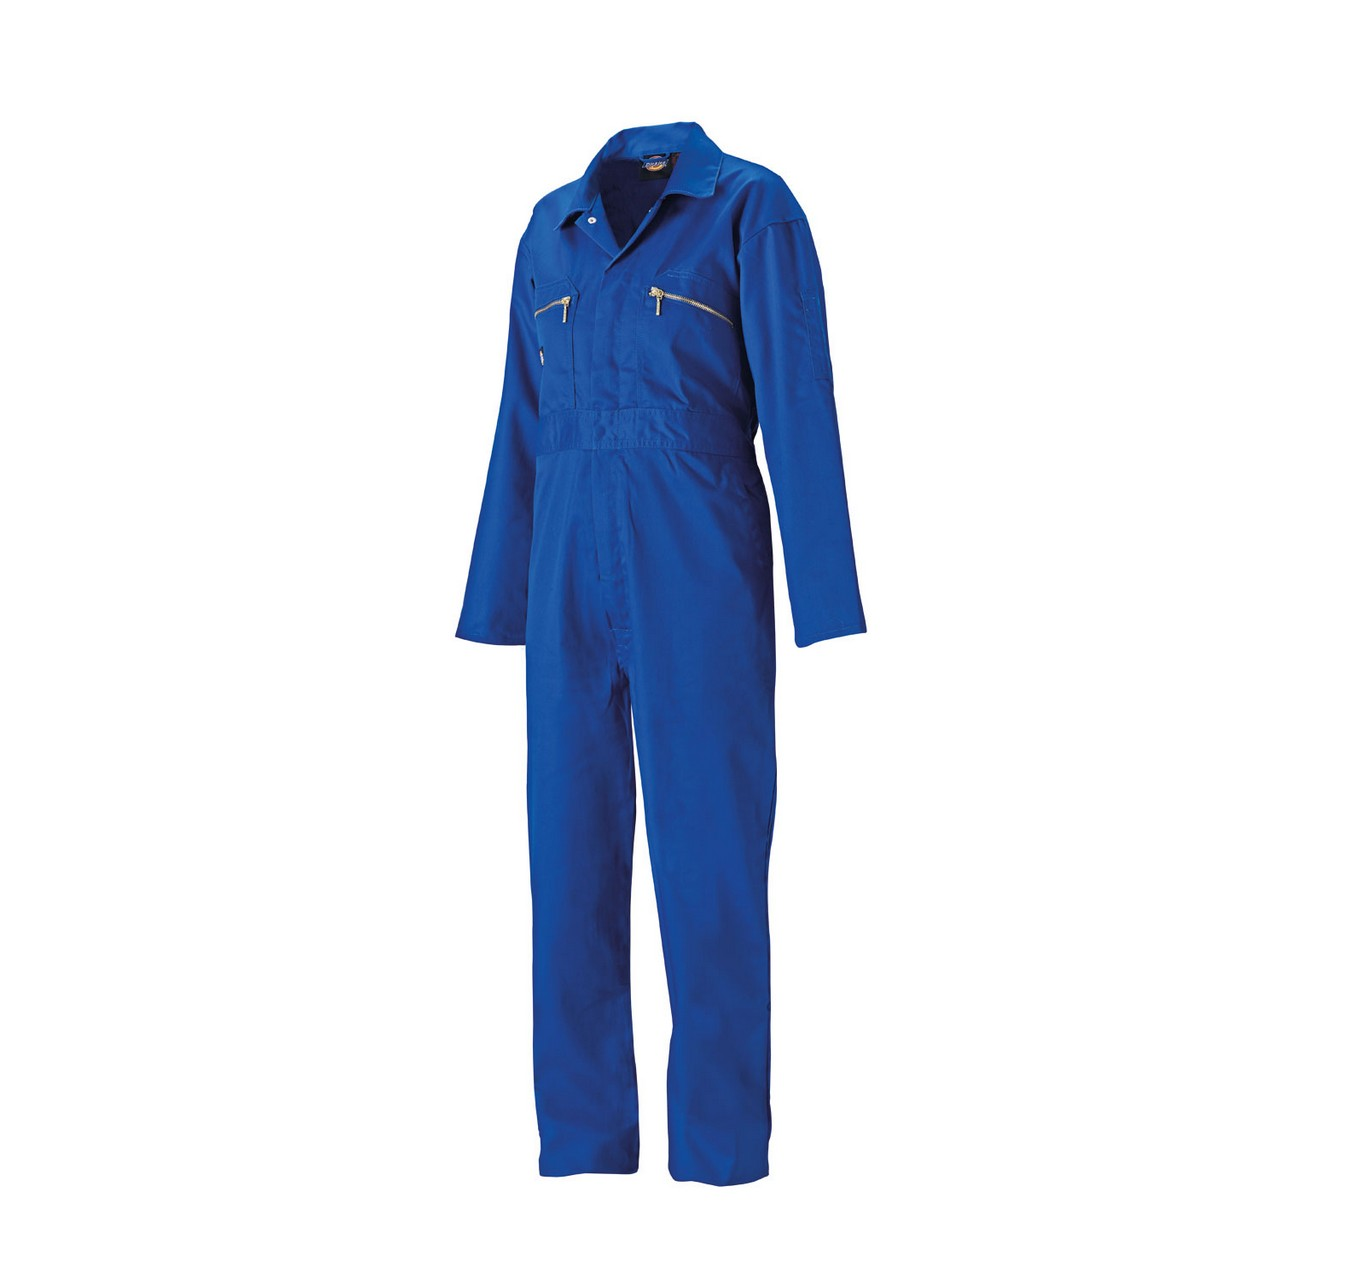 Redhawk Kids Coverall Blue 24